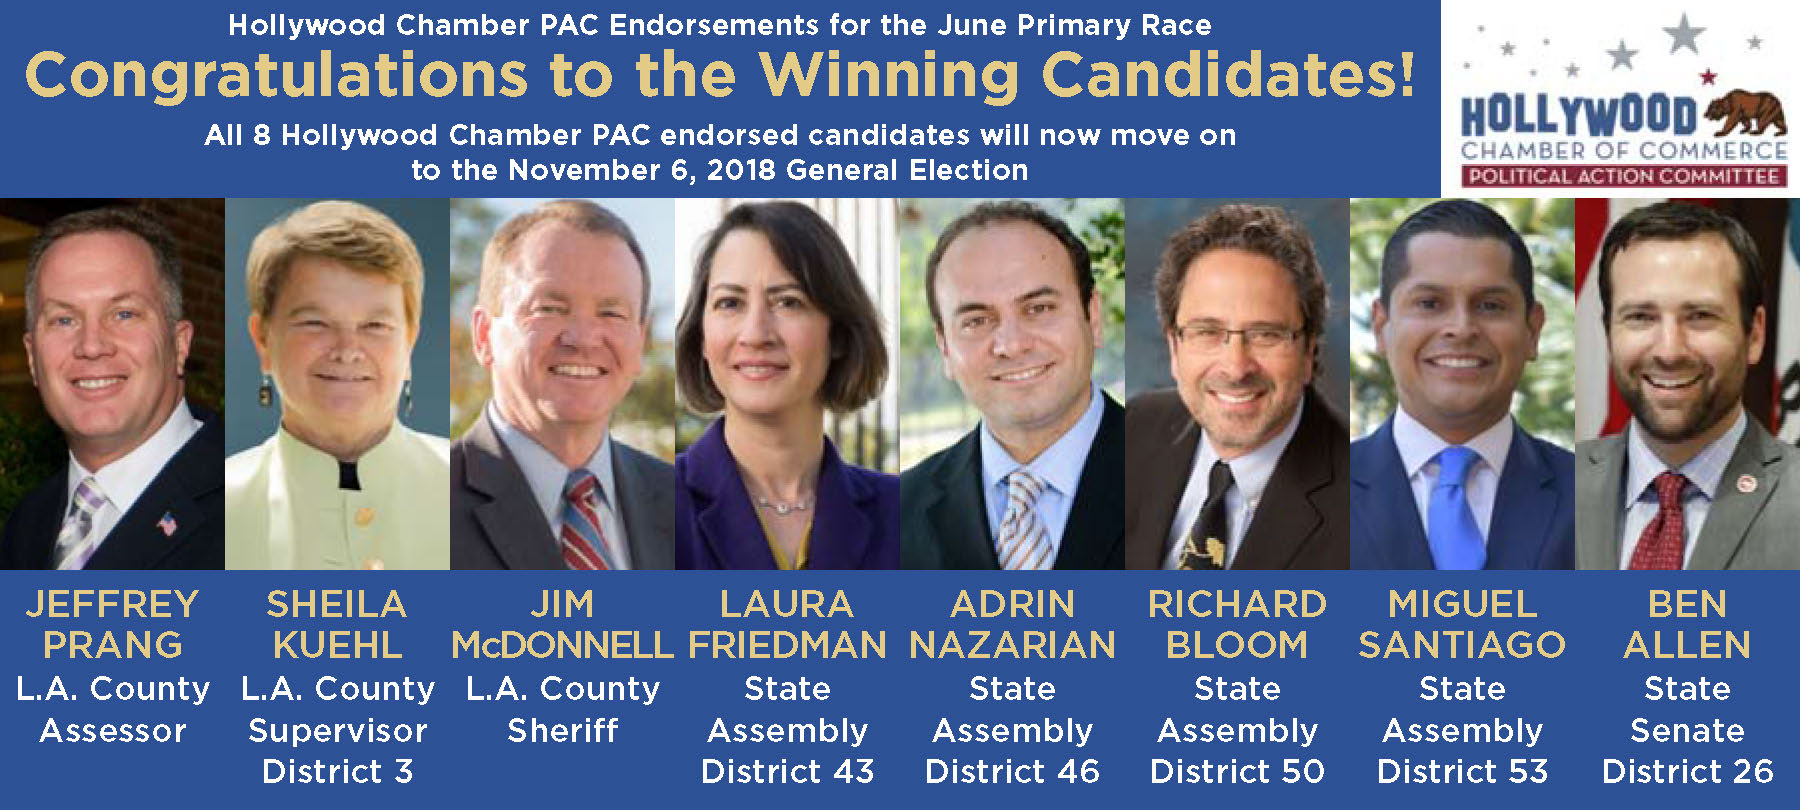 We congratulate all our Hollywood Chamber PAC endorsed winning candidates